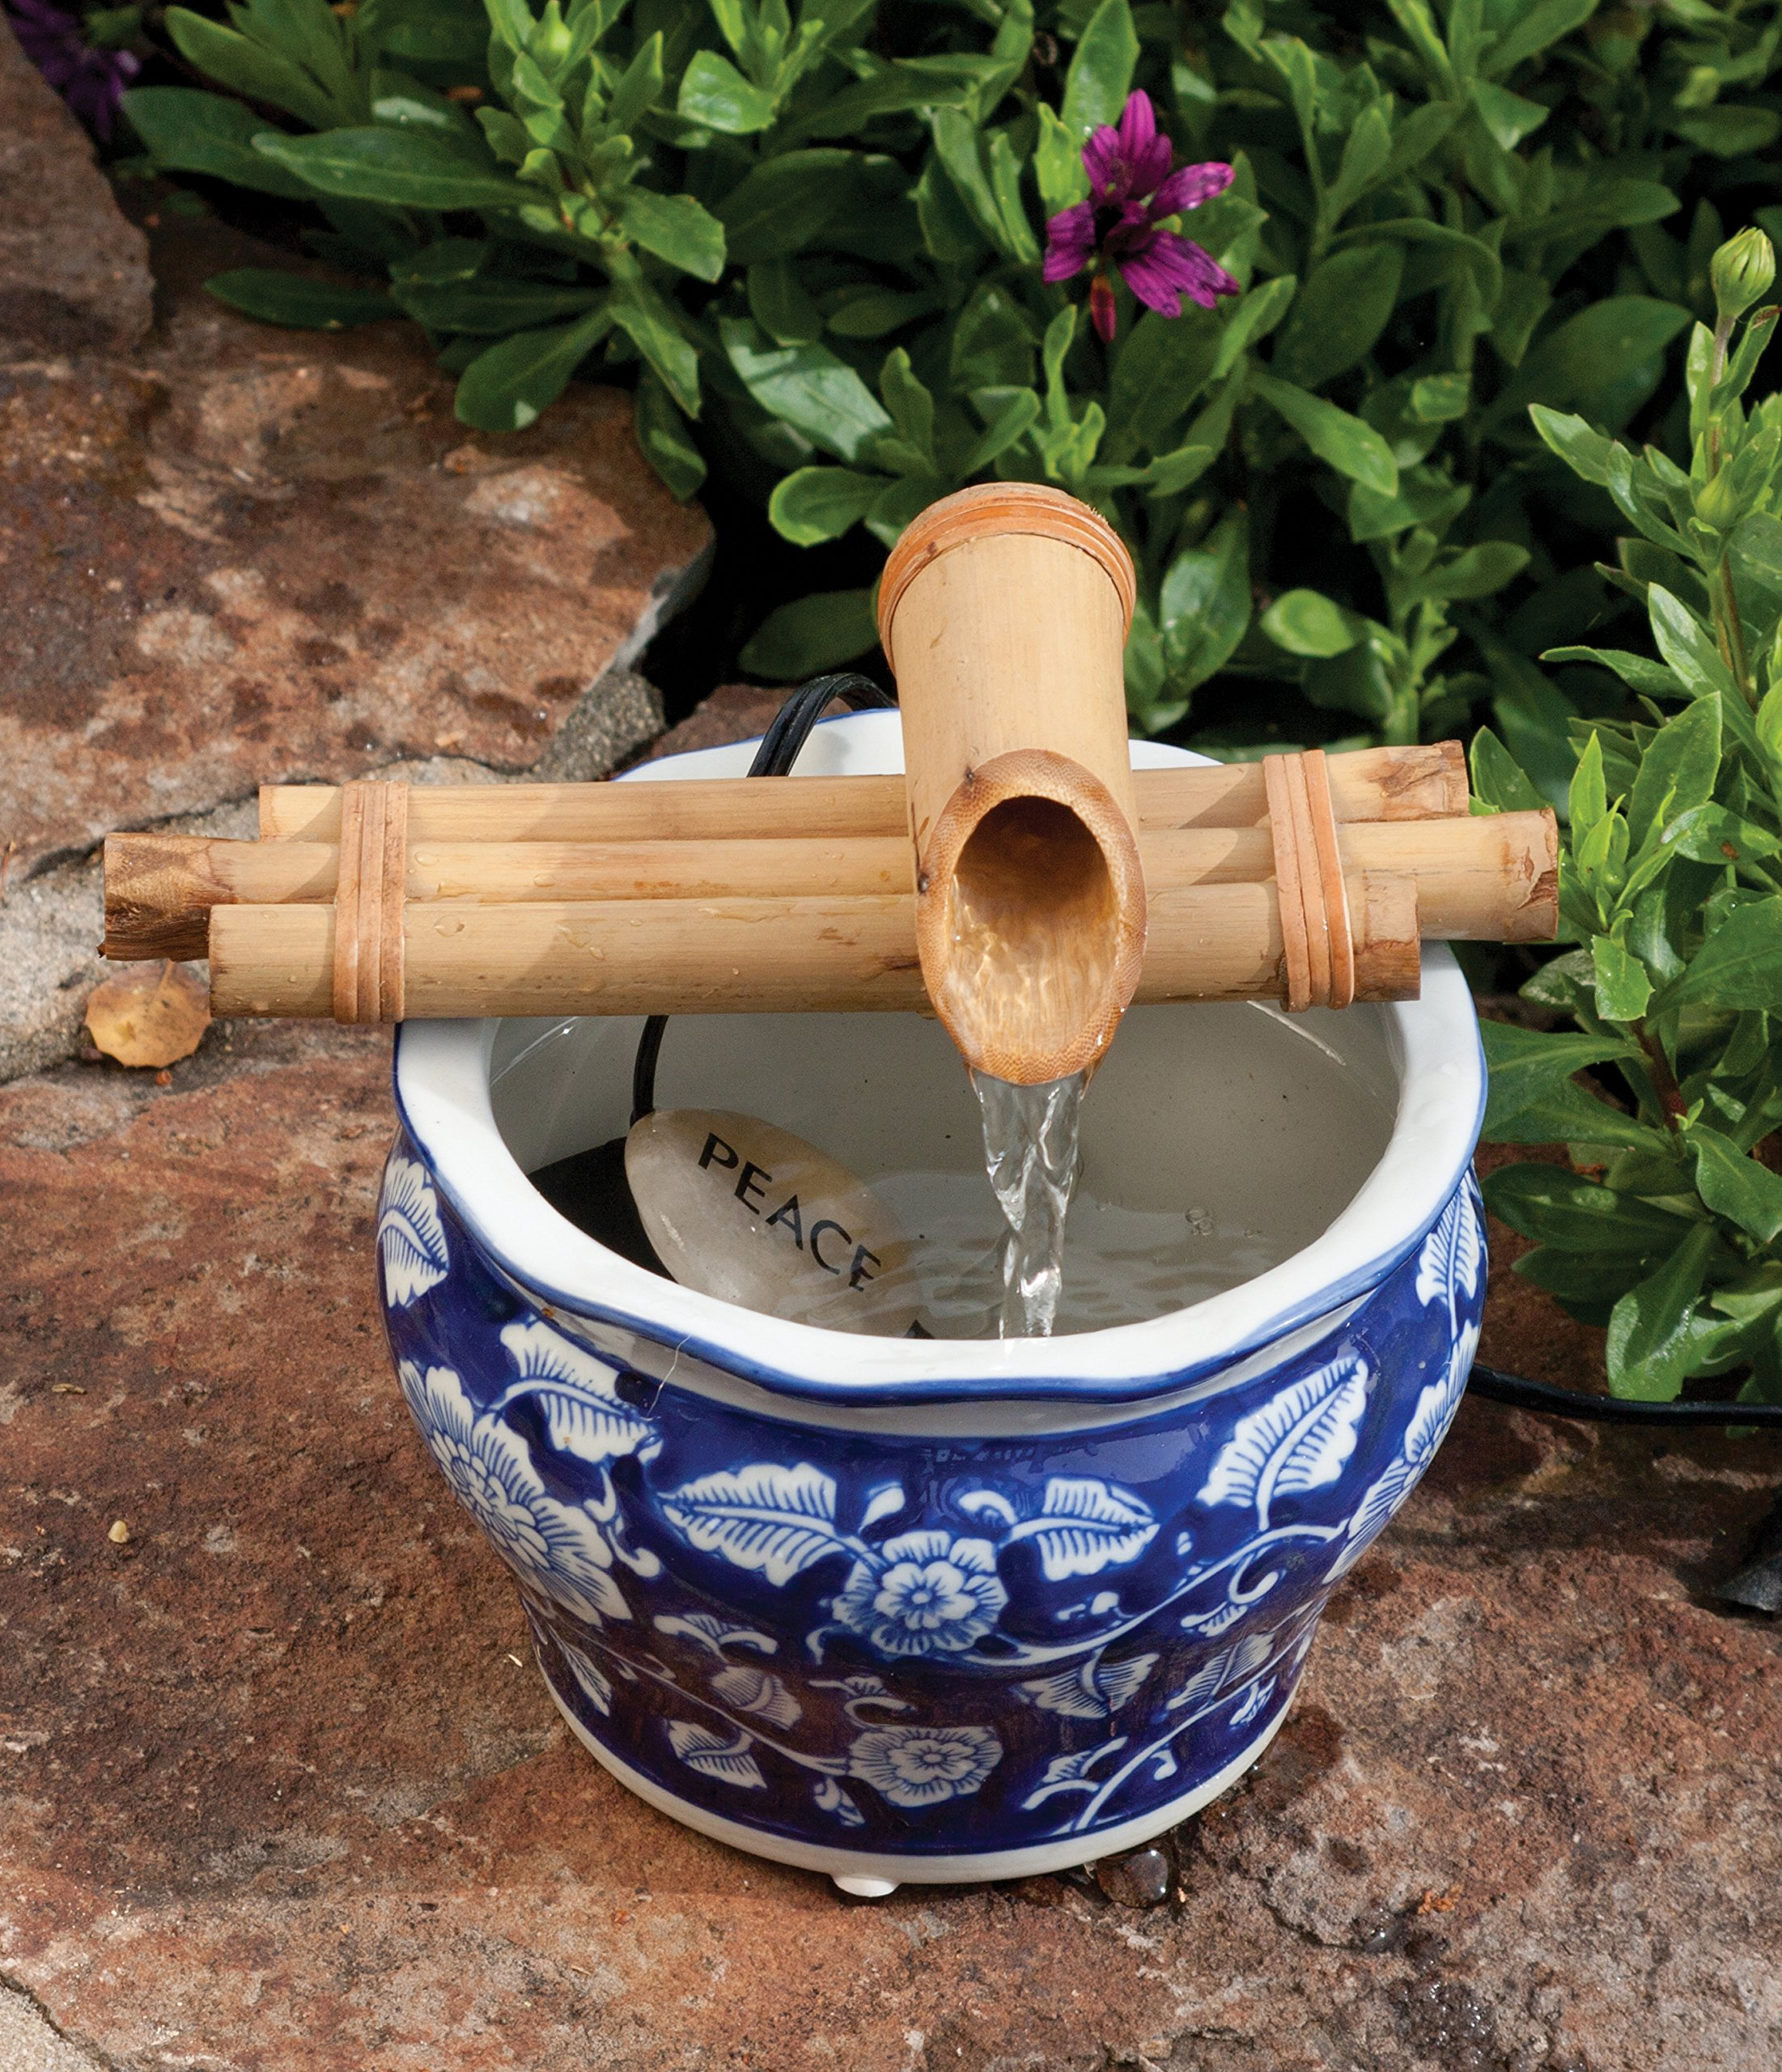 Bamboo Fountain with Pump Sman 7 Inch Three Arm Style, Indoor or Outdoor Fountain, Natural, Split Resistant Bamboo, Combine with Any Container to Create Your Own Fountain, Handmade by Bamboo Accents